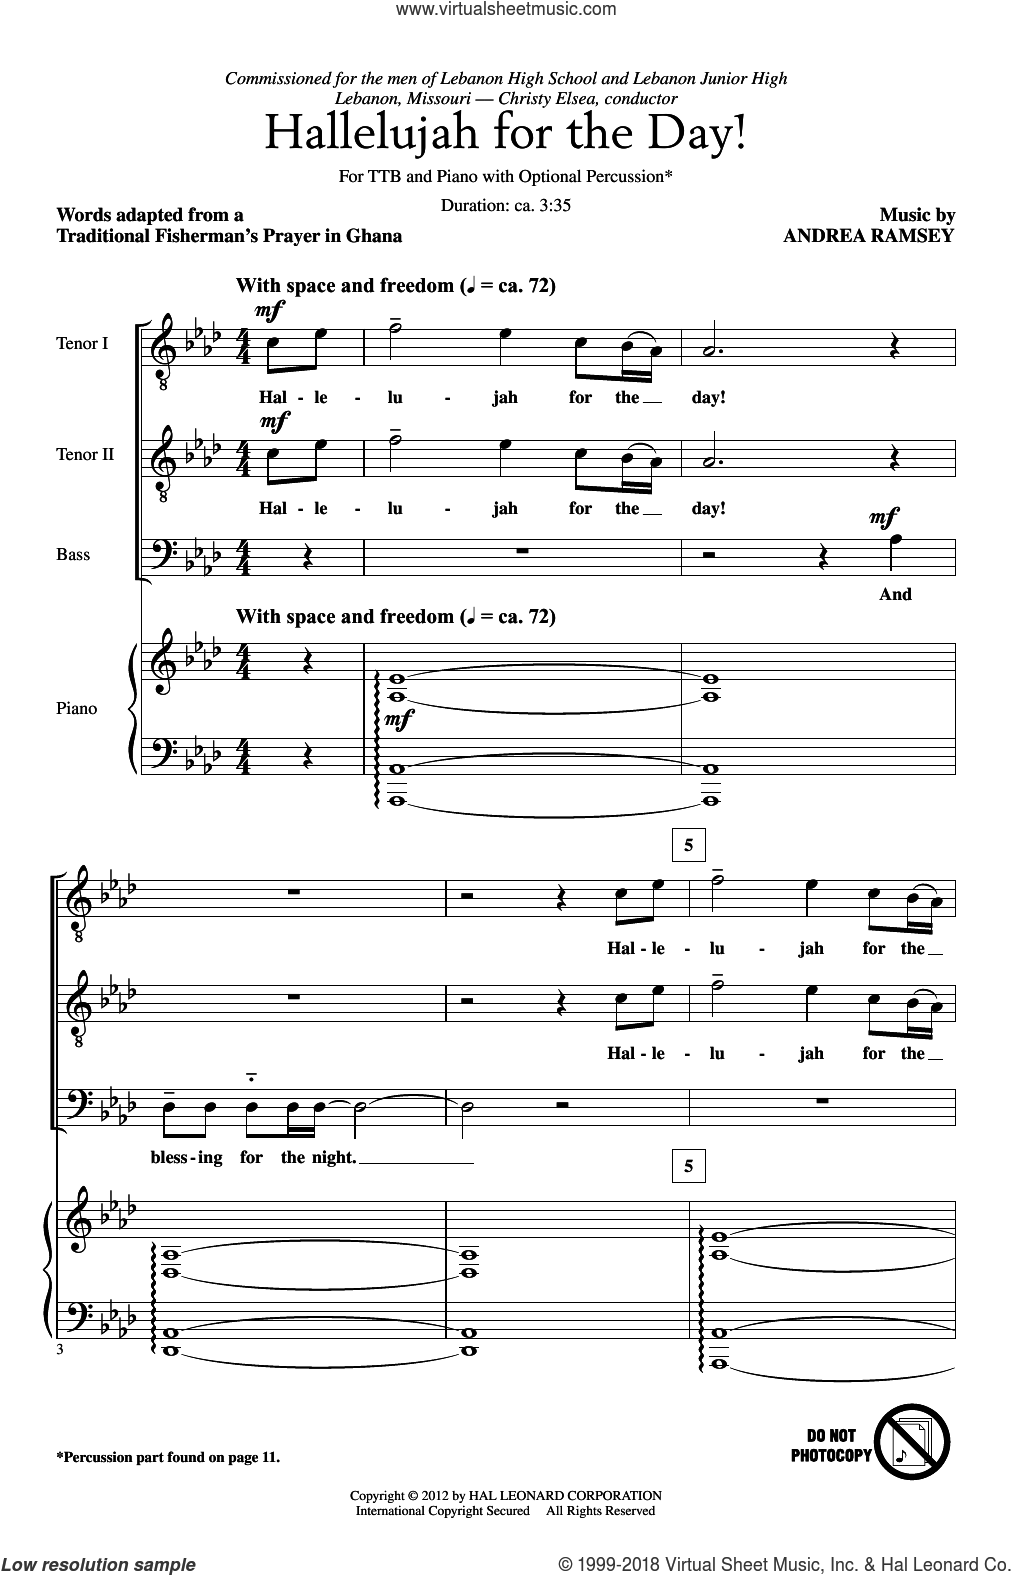 Hallelujah For The Day! sheet music for choir and piano (TTBB) by Andrea Ramsey